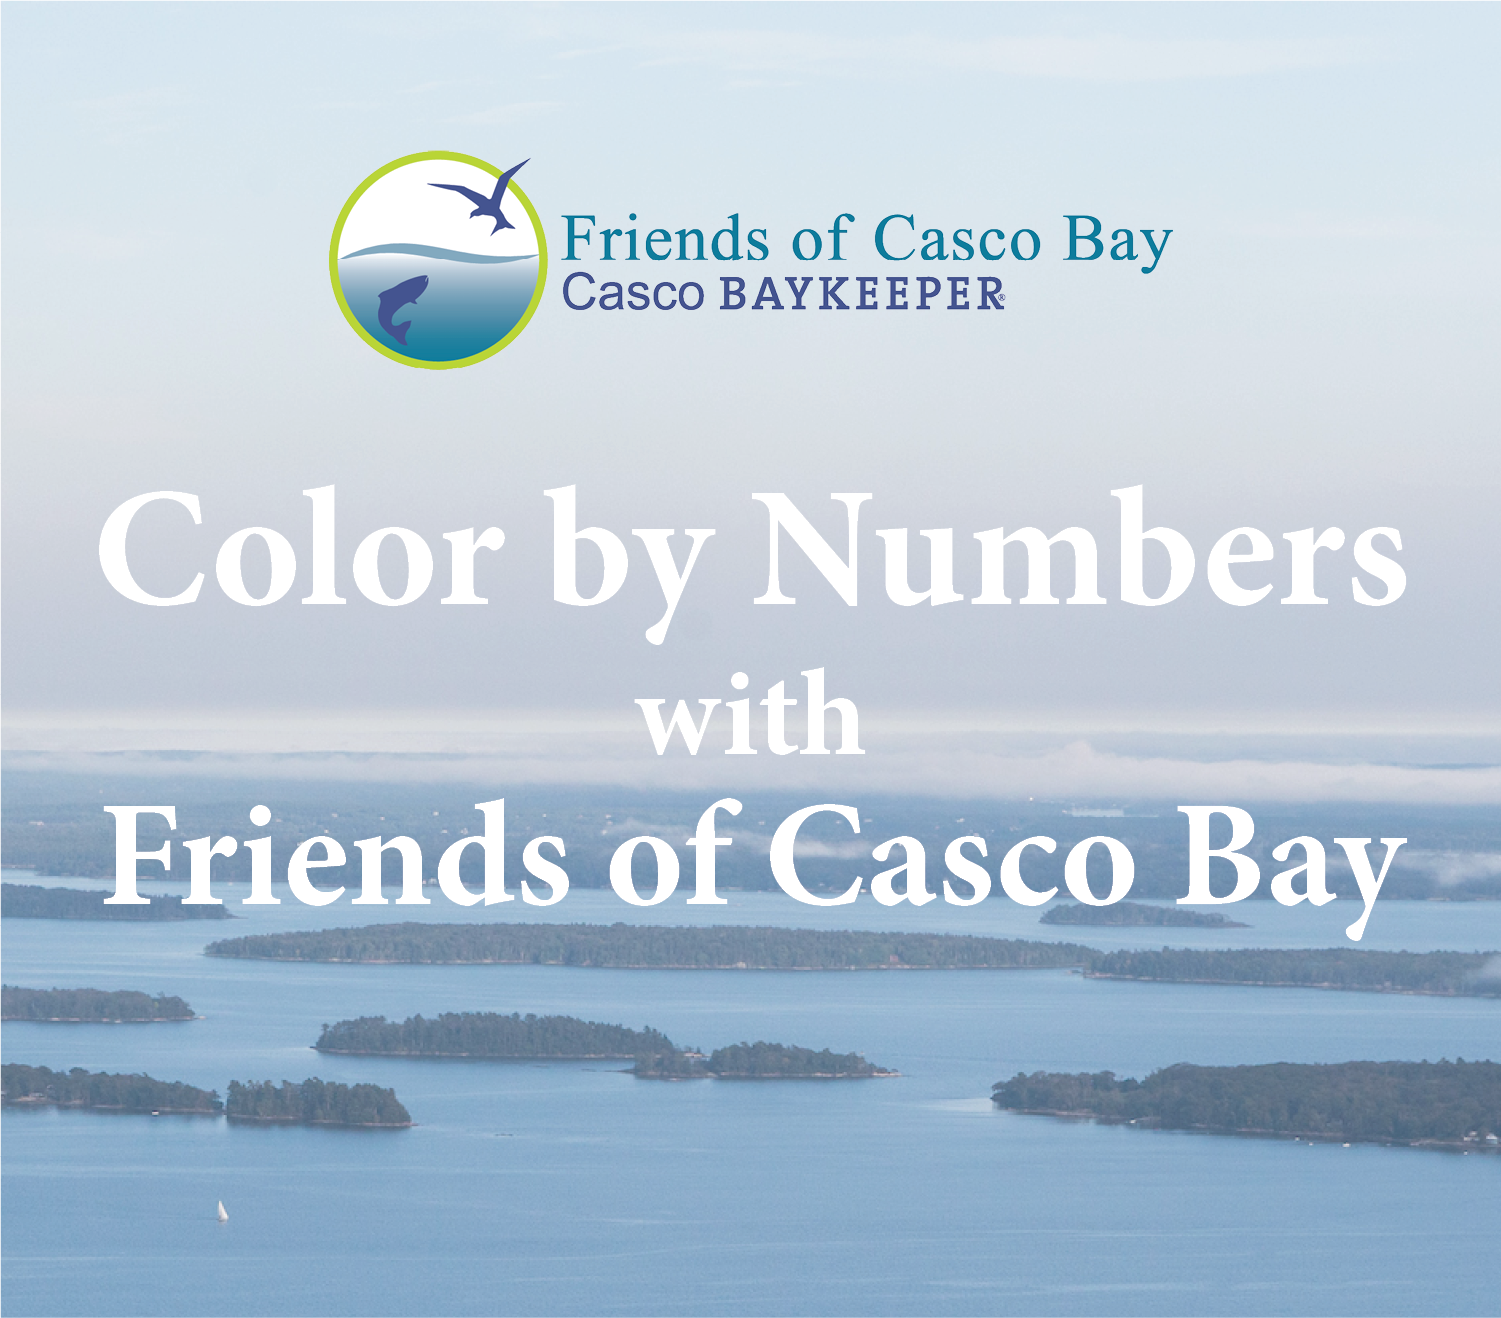 images for color by numbers manual • Friends of Casco Bay